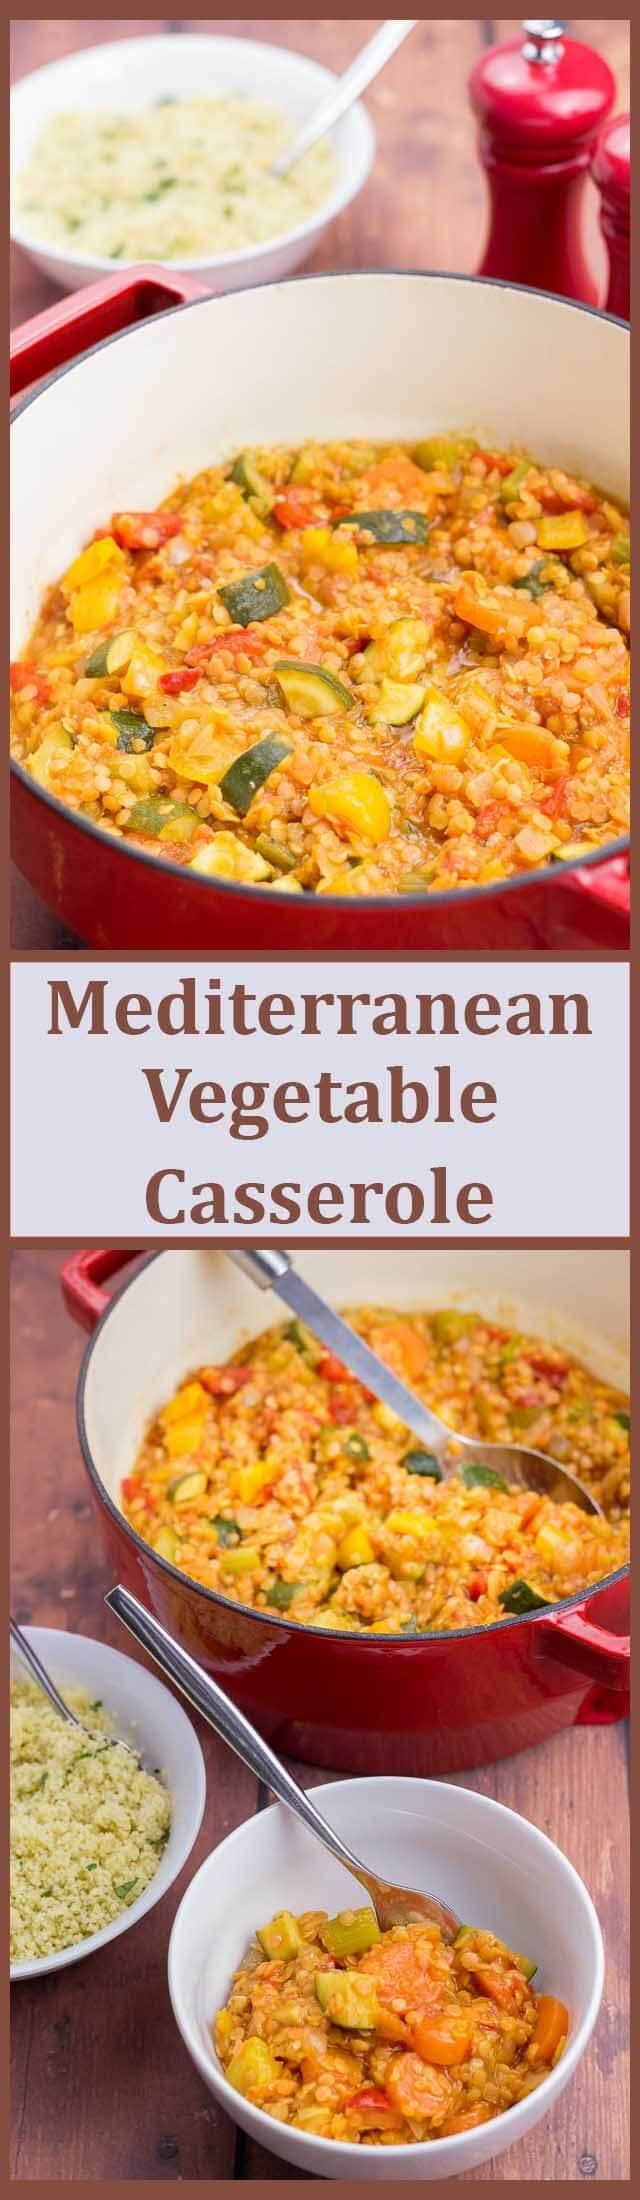 This delicious one pot family Mediterranean vegetable casserole is packed full of flavour, with loads of healthy veggies and is also extremely filling and satisfying.